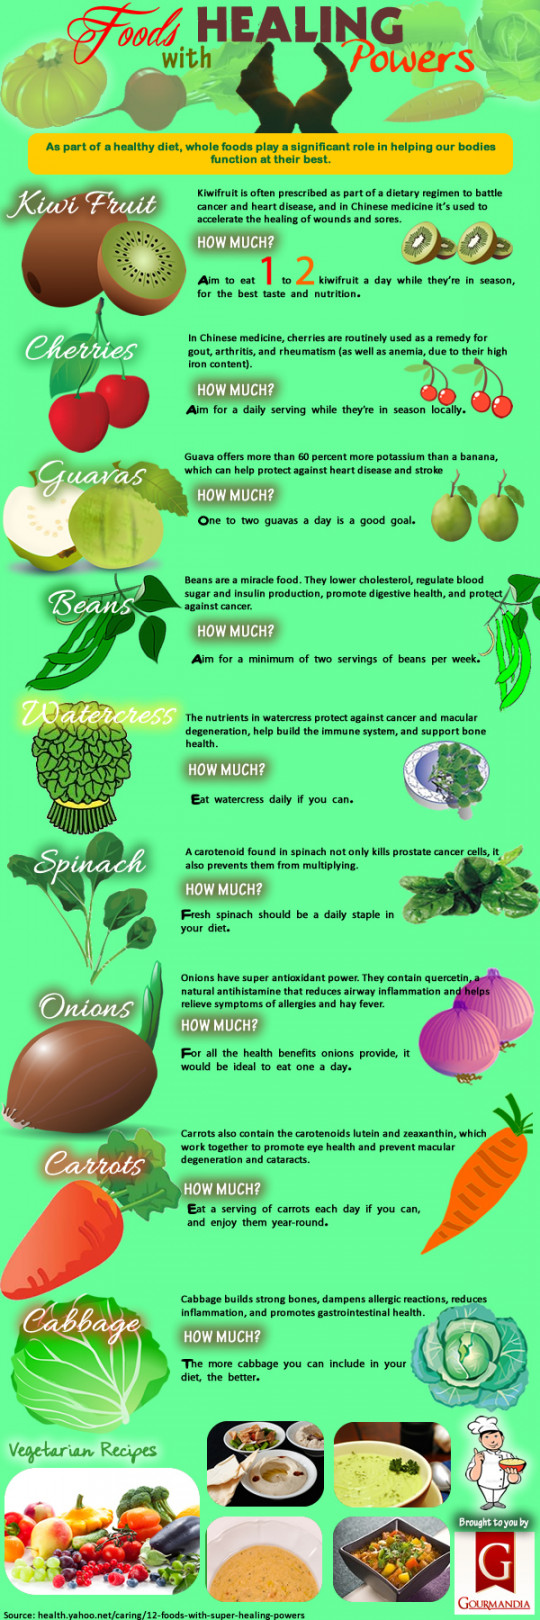 Foods With Healing Powers